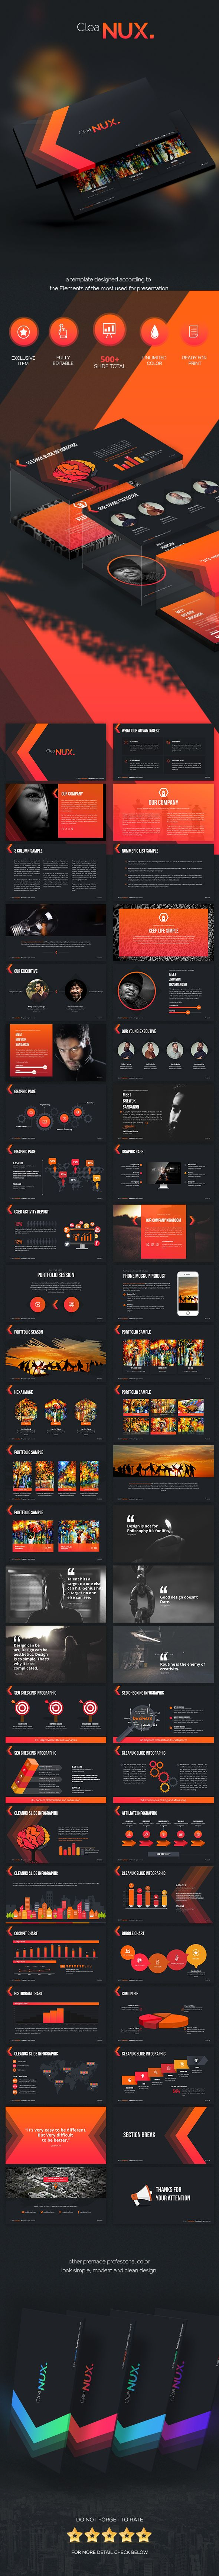 Cleanux - Powerpoint Presentation Template